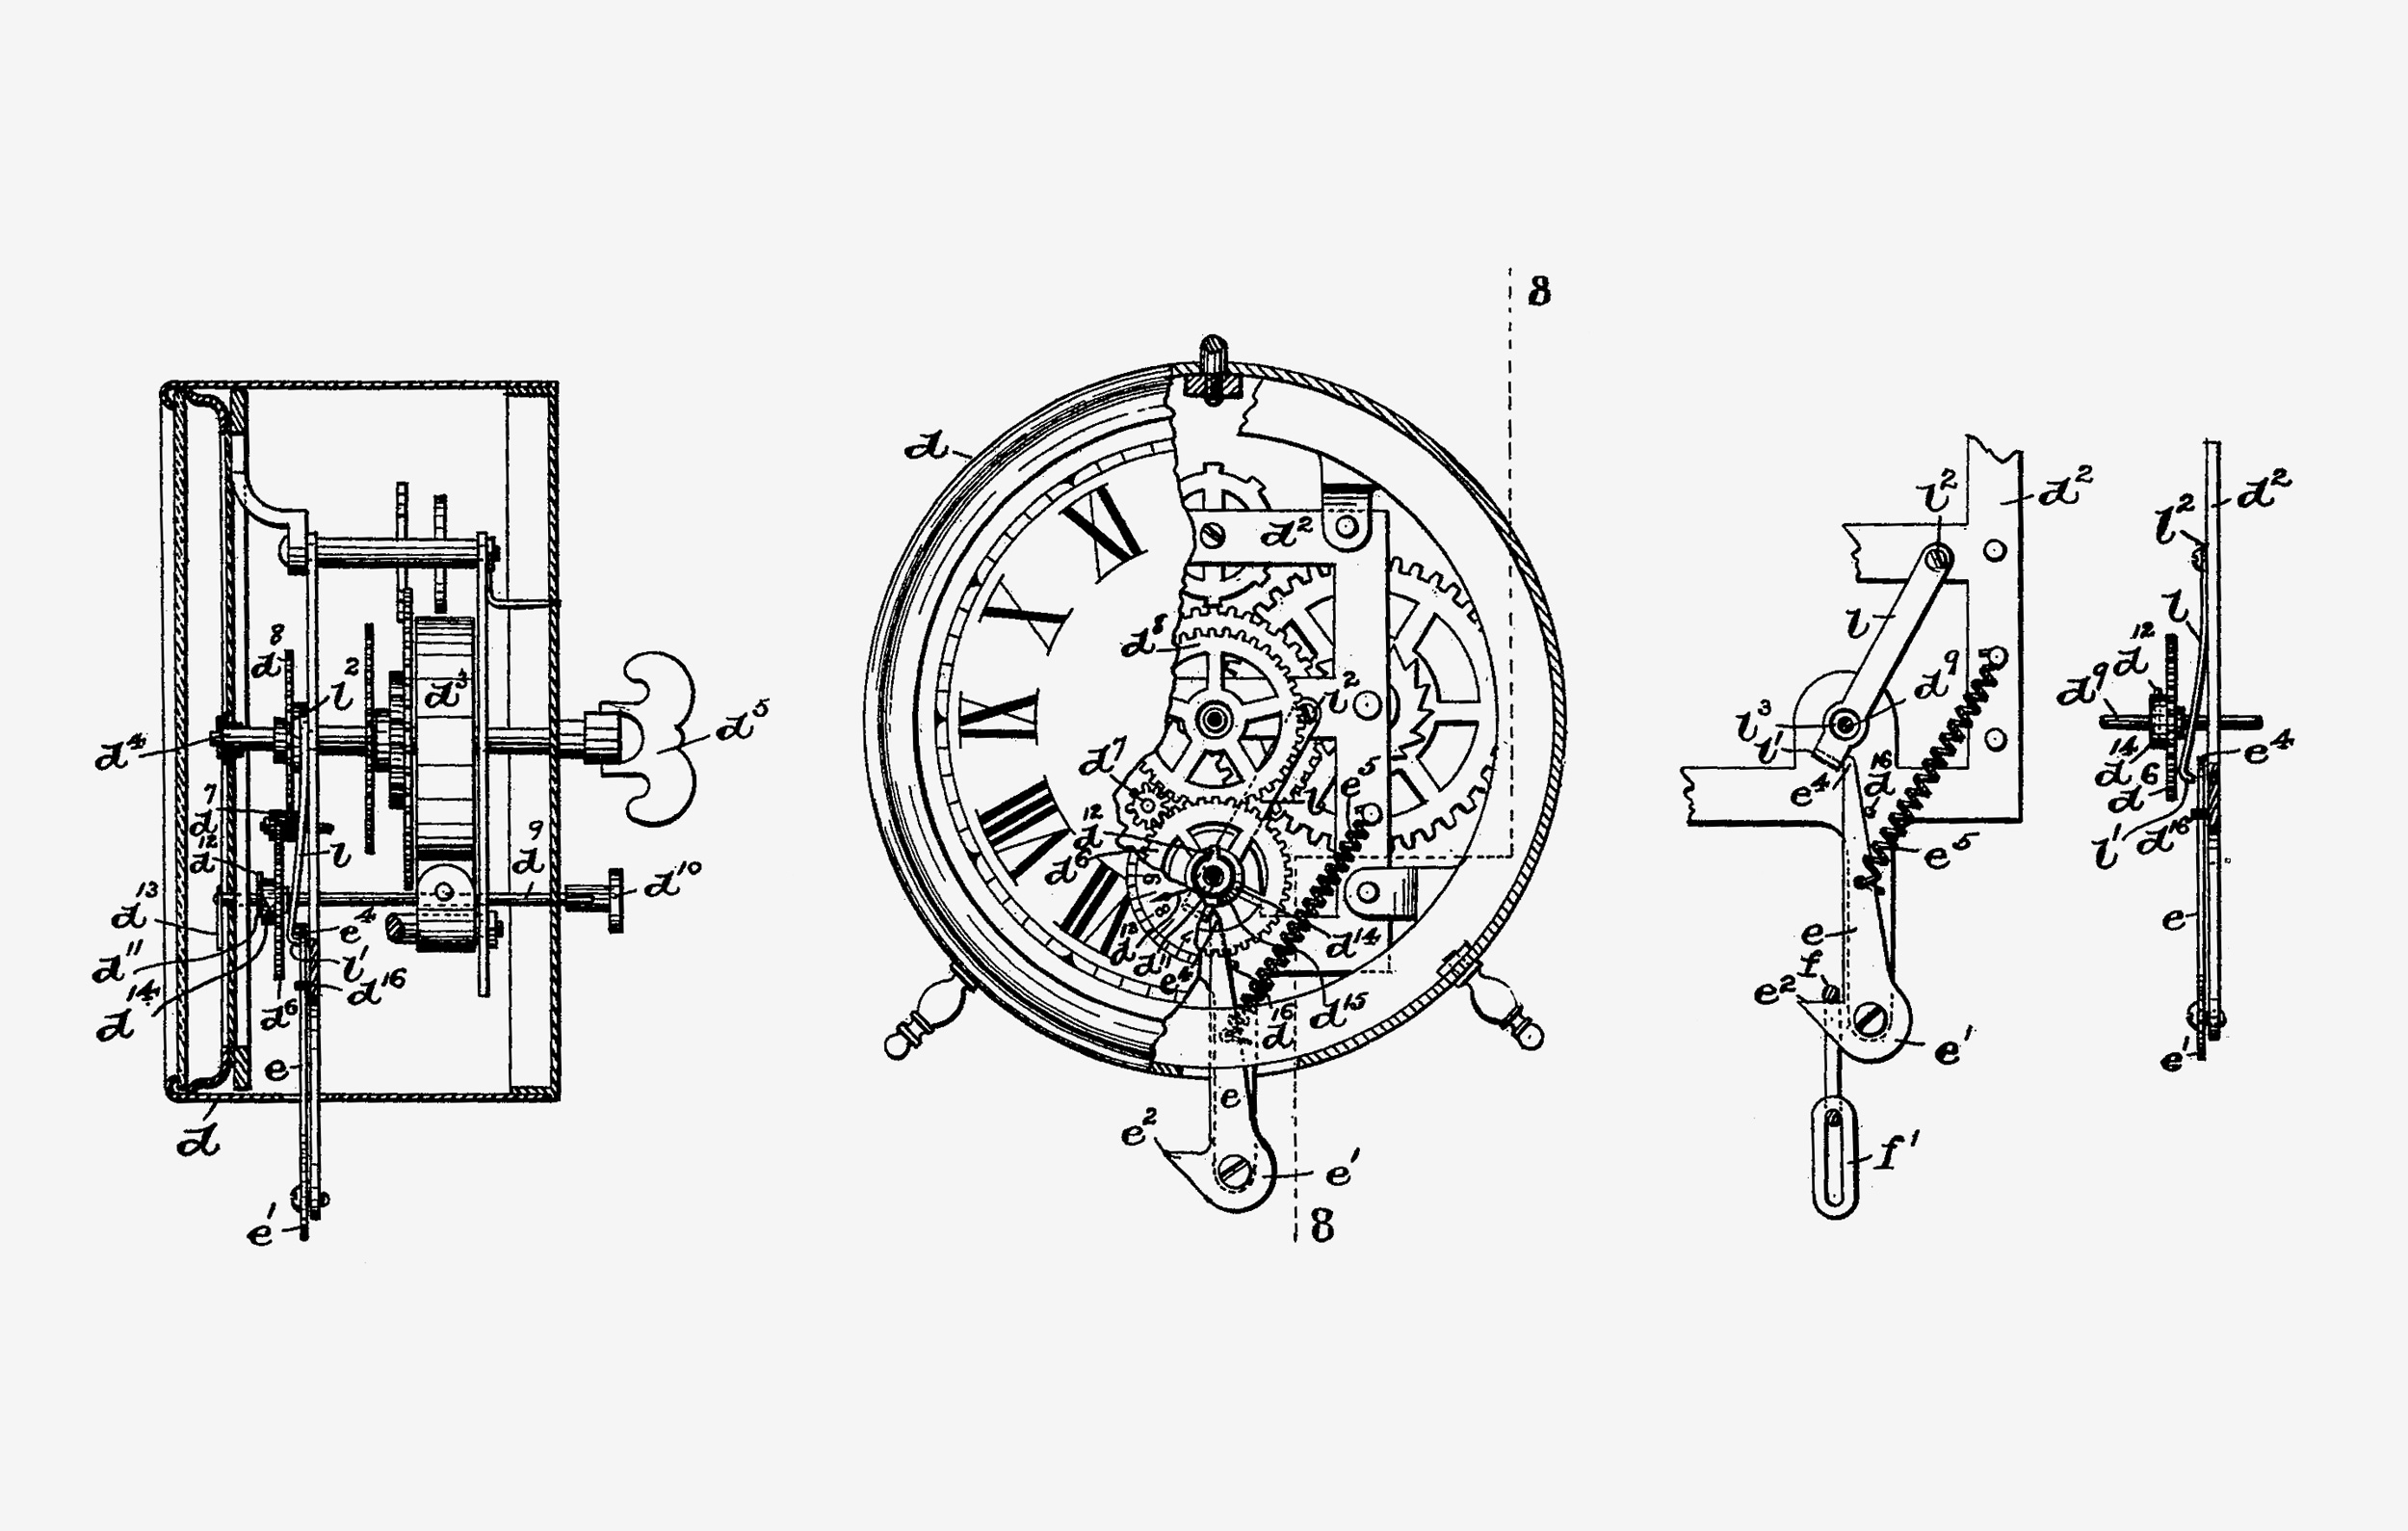 Maximilian Schubert Clockmaker Ⅱ: Scope of work